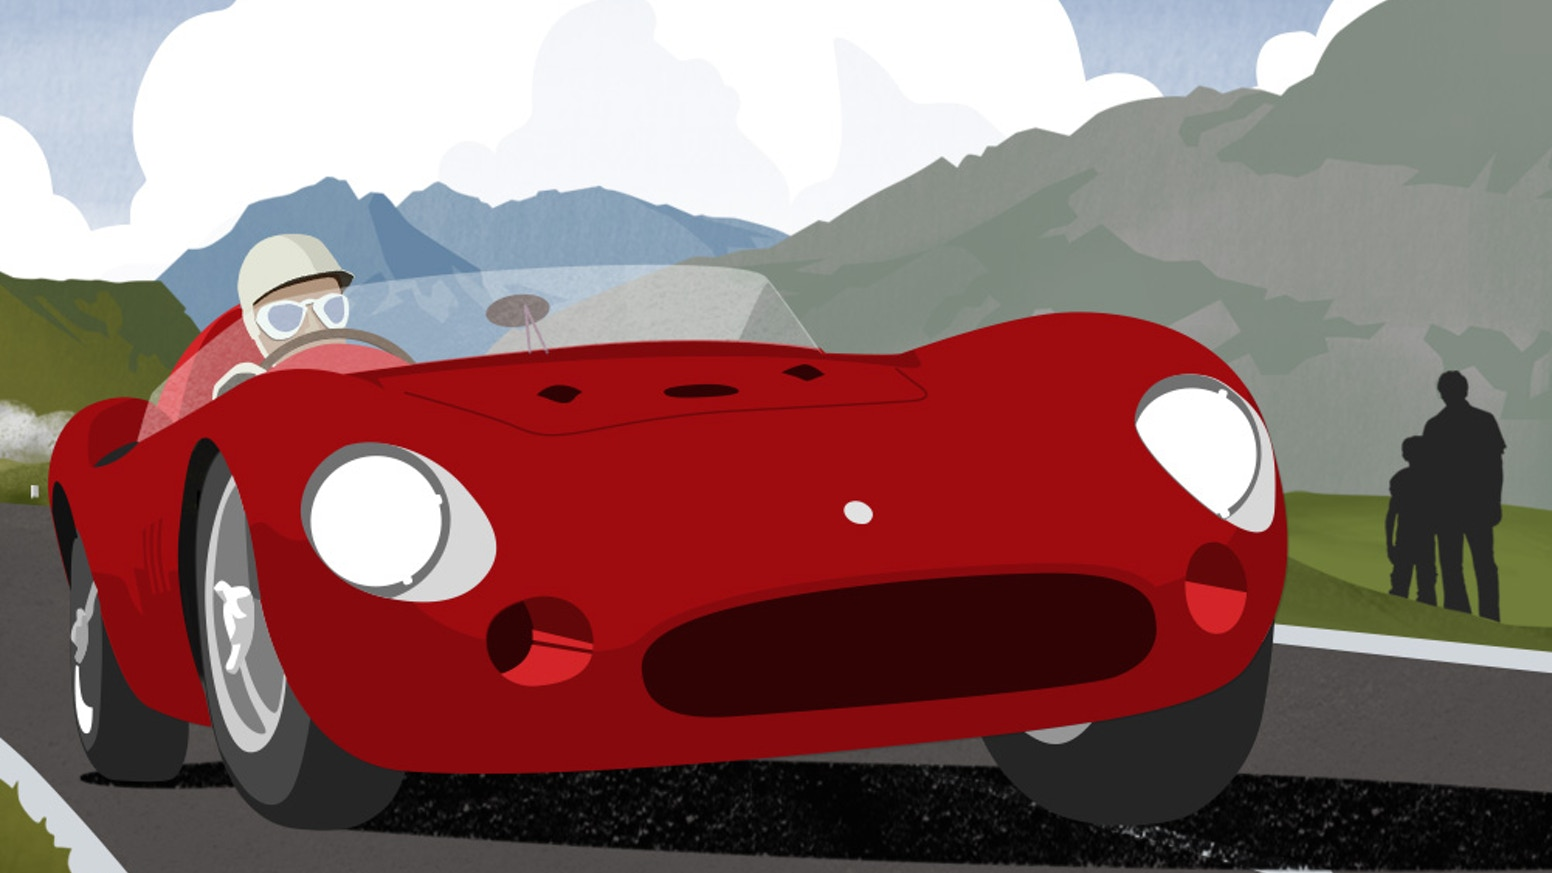 The Little Red Racing Car Is A Picture Book Story Of 1955 Maserati 300s Discovered In Barn By Son And Rebuilt With His Father